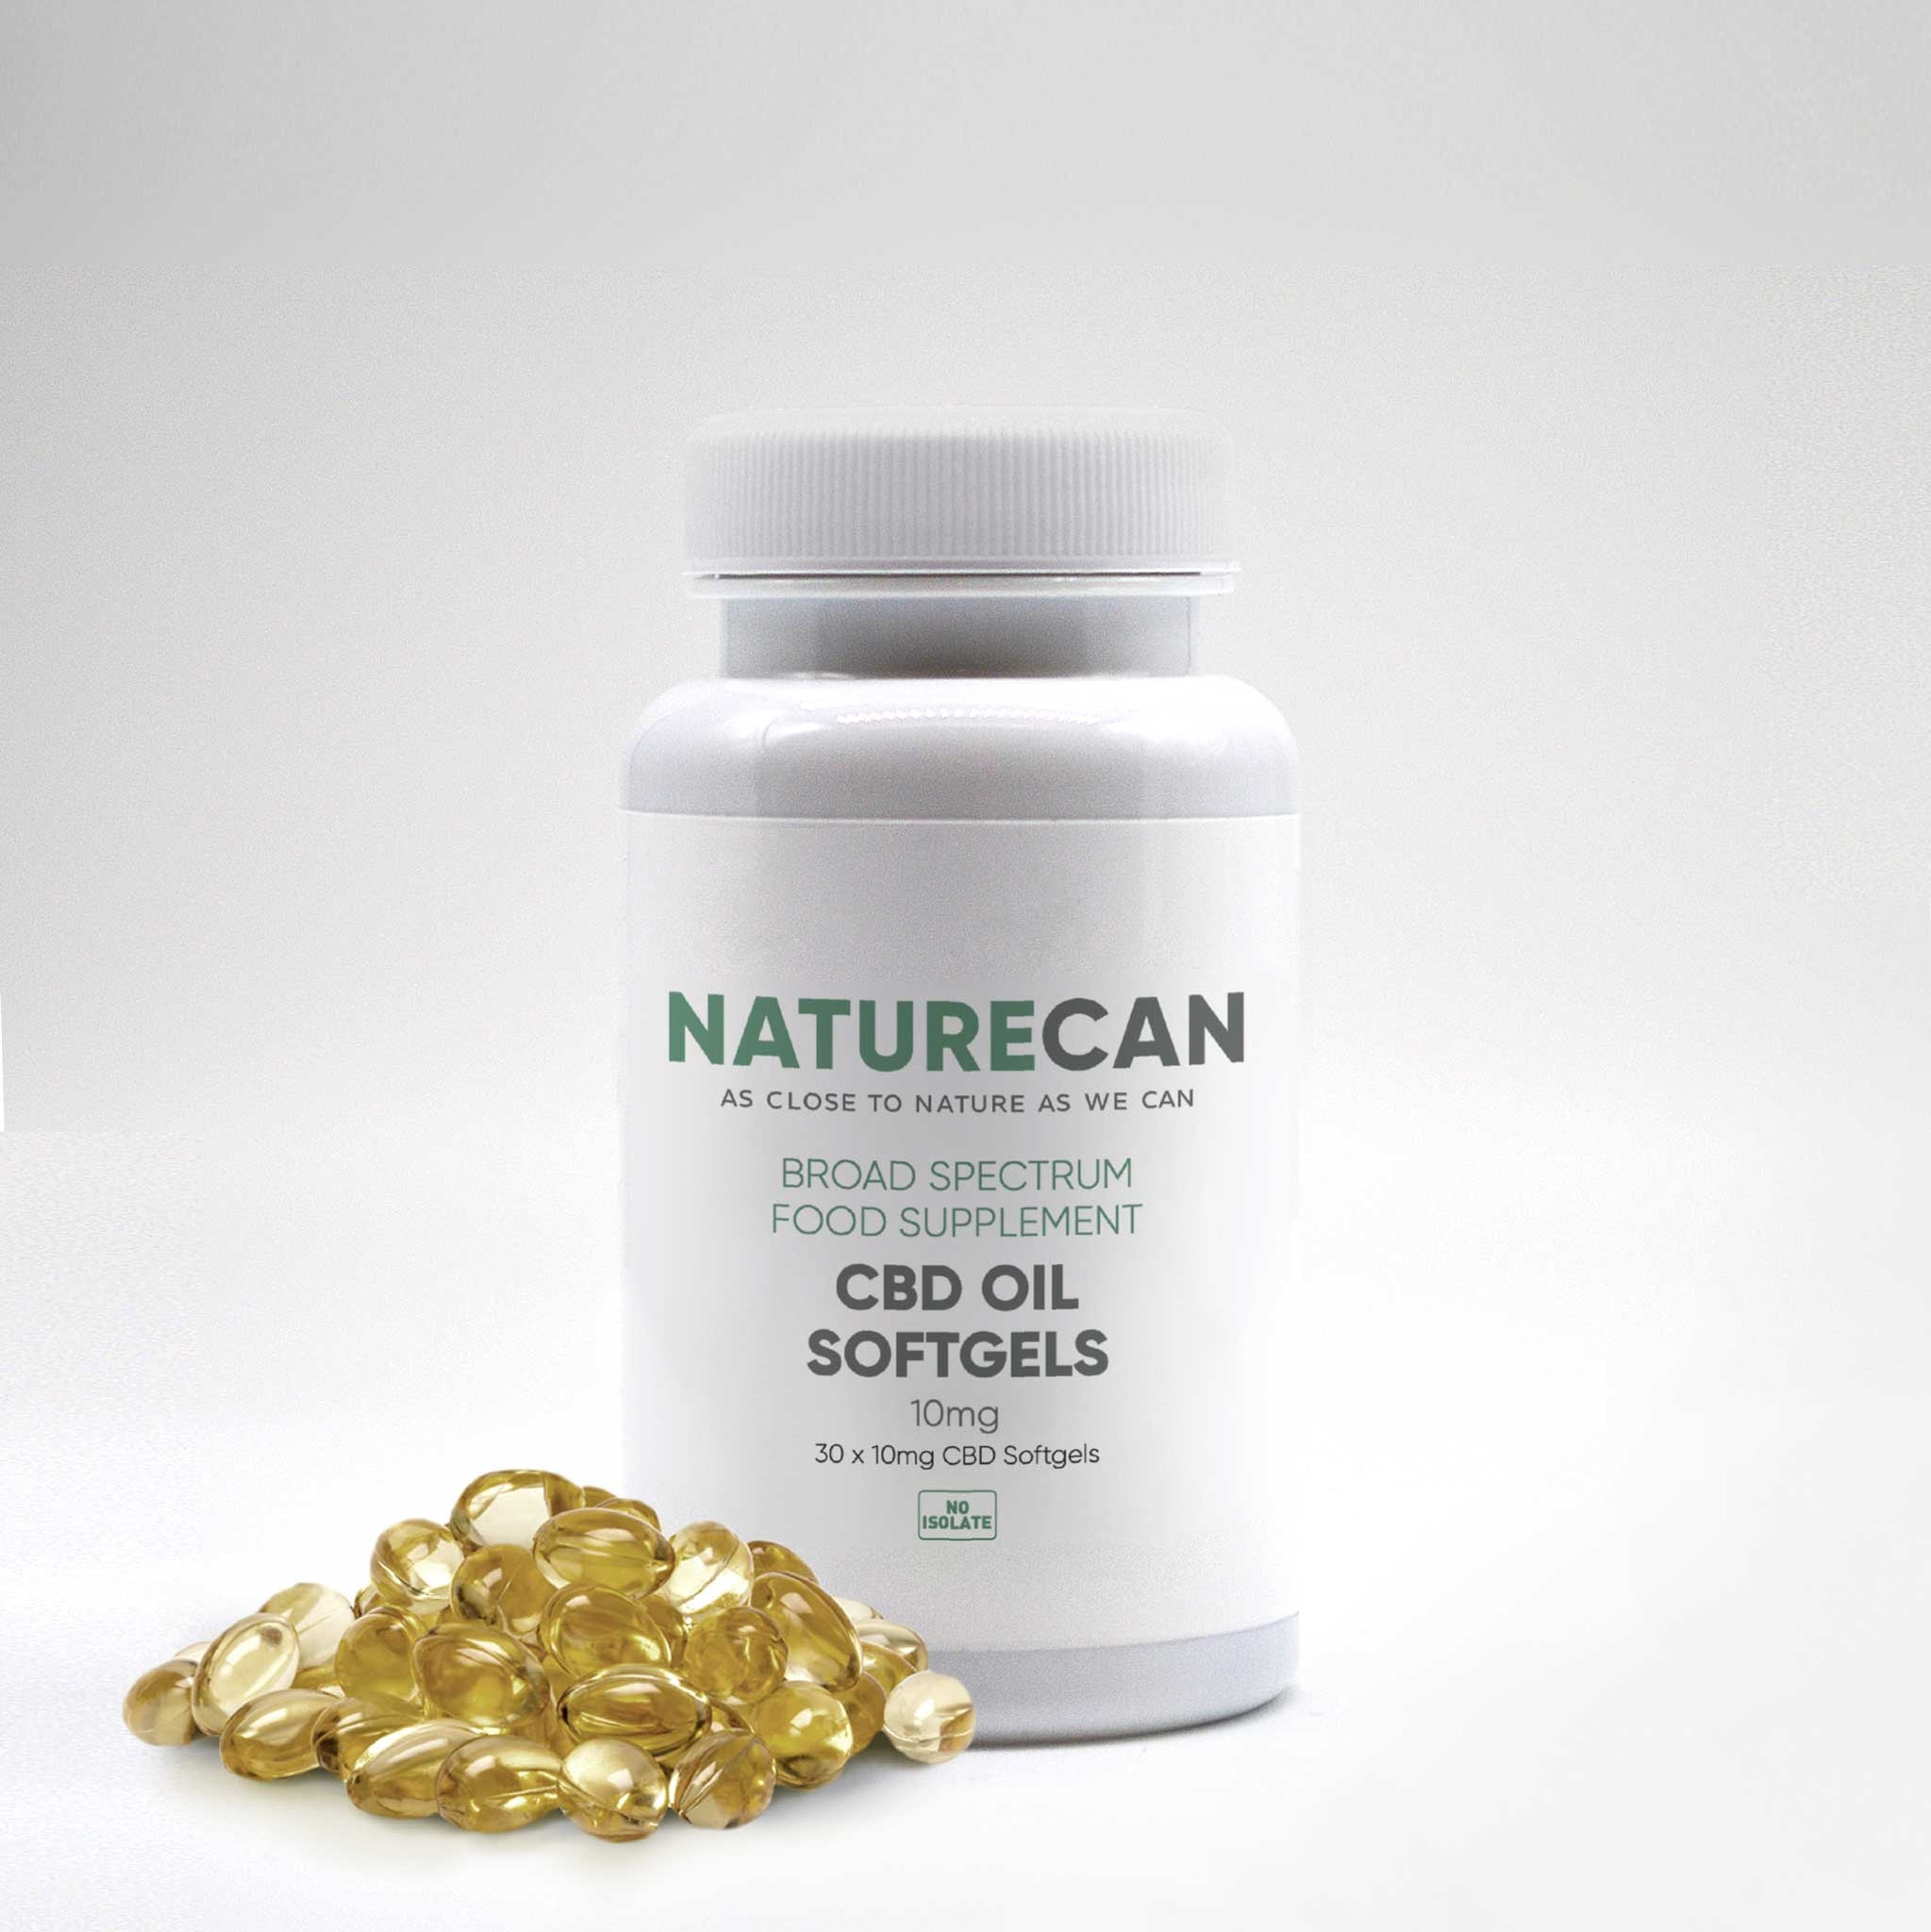 10mg-25mg CBD Oil Softgel Capsules